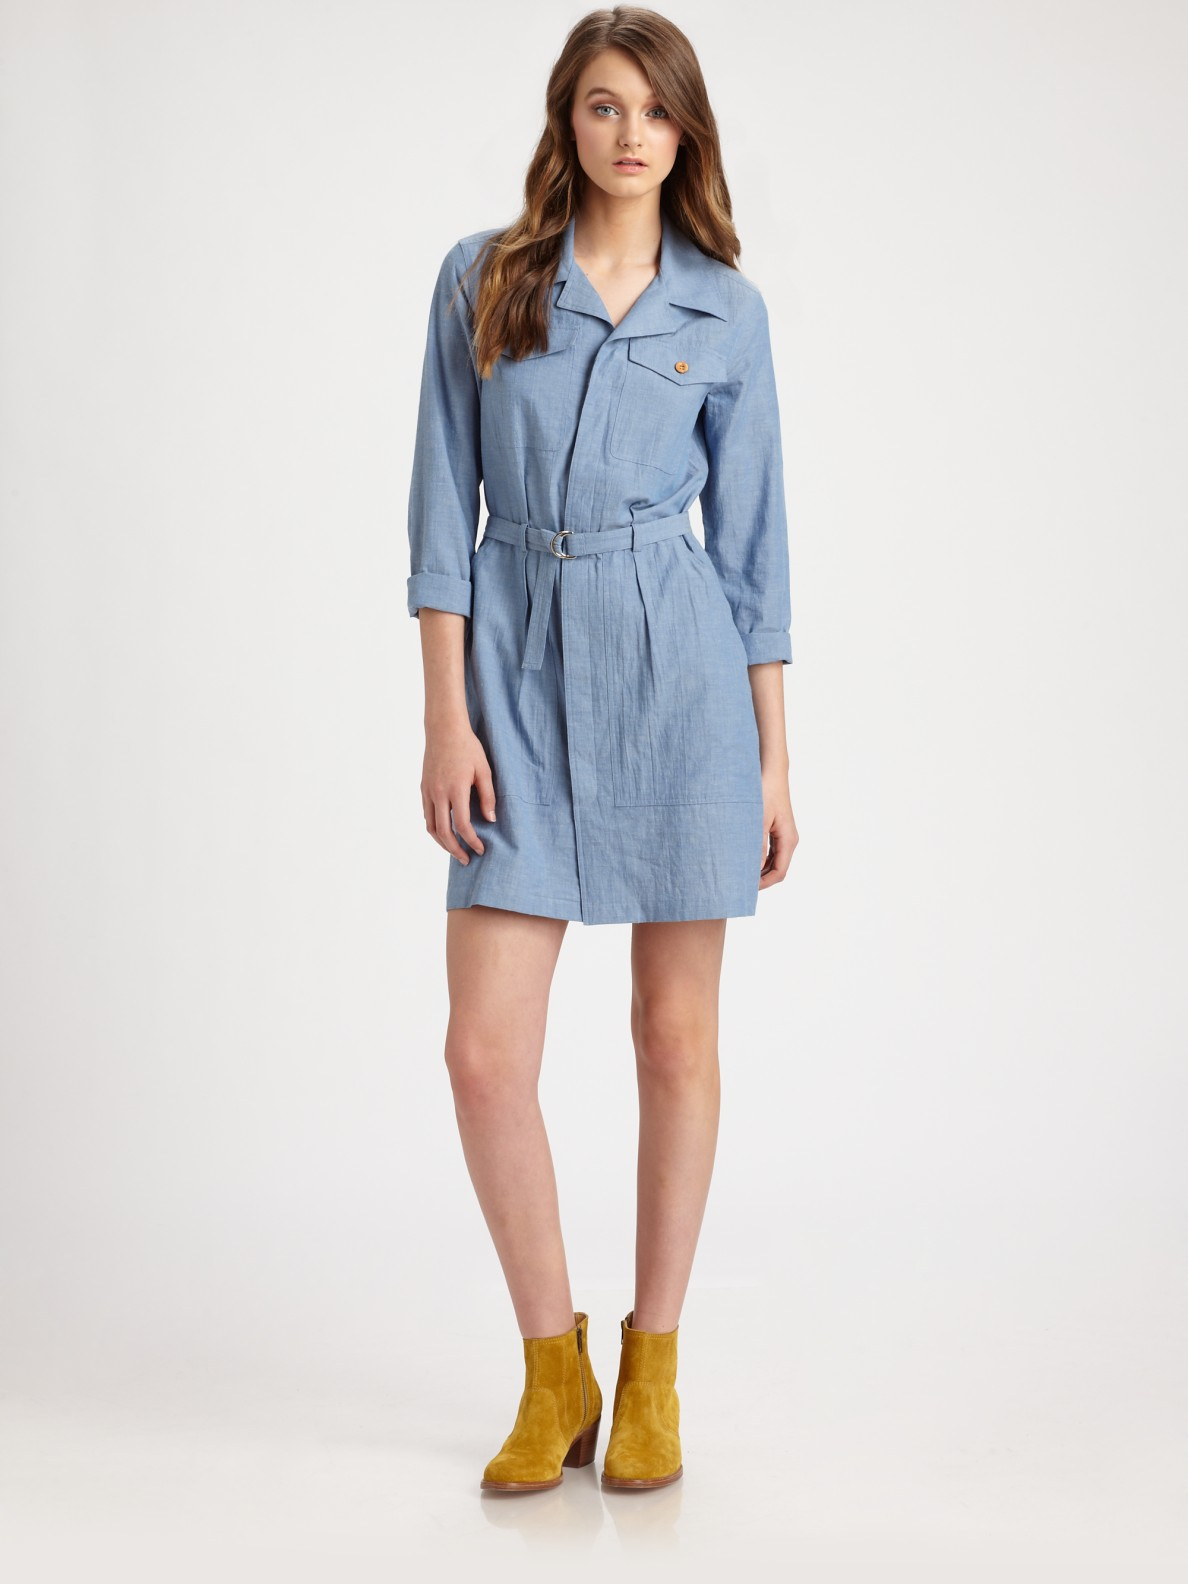 Blue Jean Shirt Dress